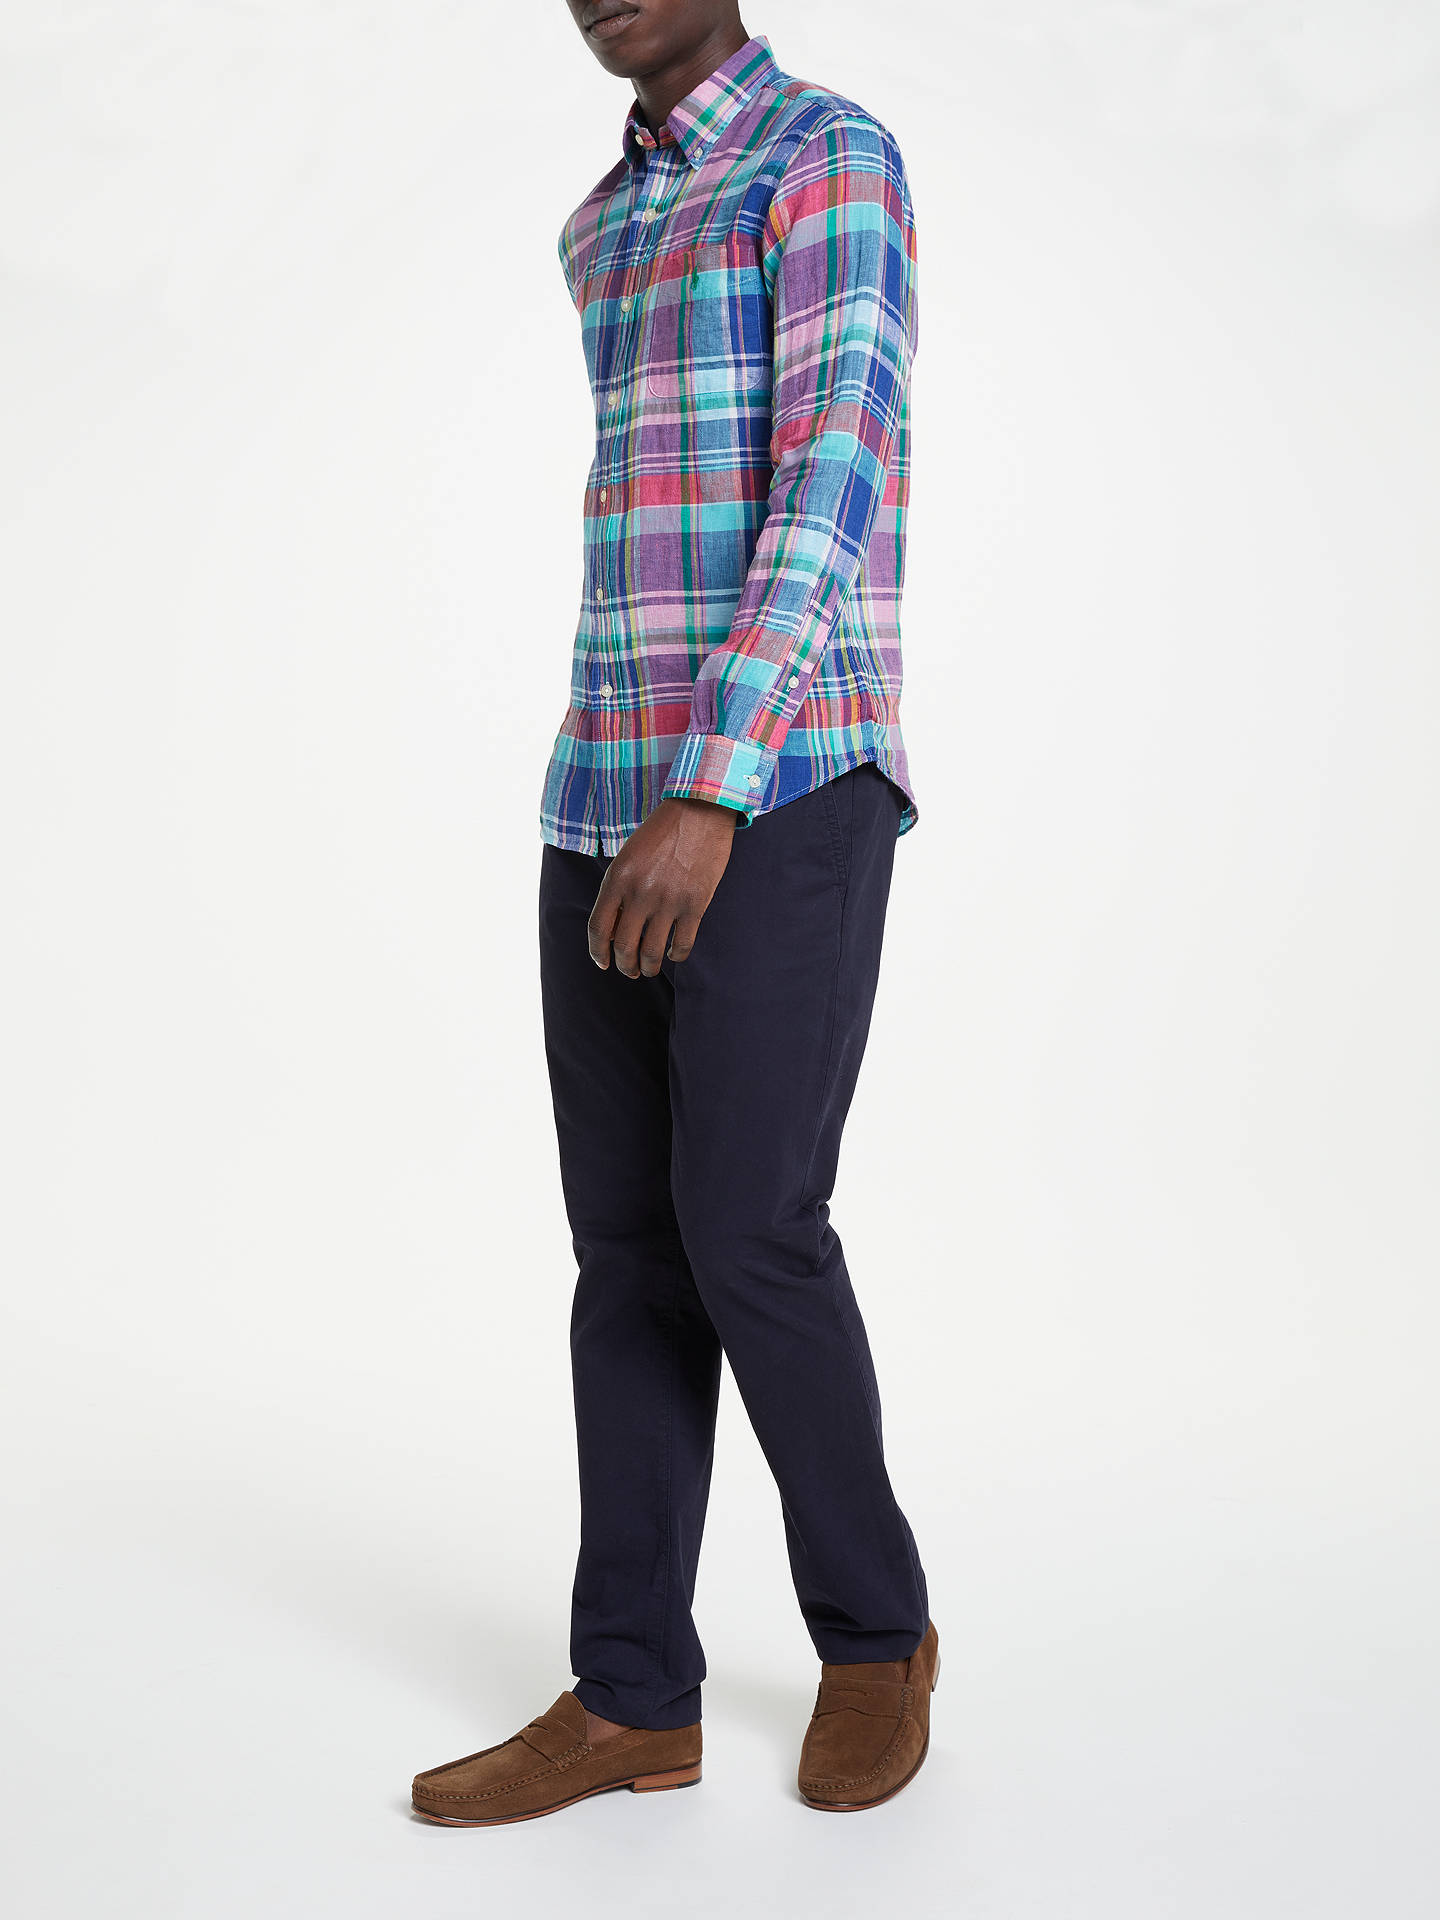 Buy Polo Ralph Lauren Linen Check Shirt, Aegean Blue/Red Multi, S Online at johnlewis.com